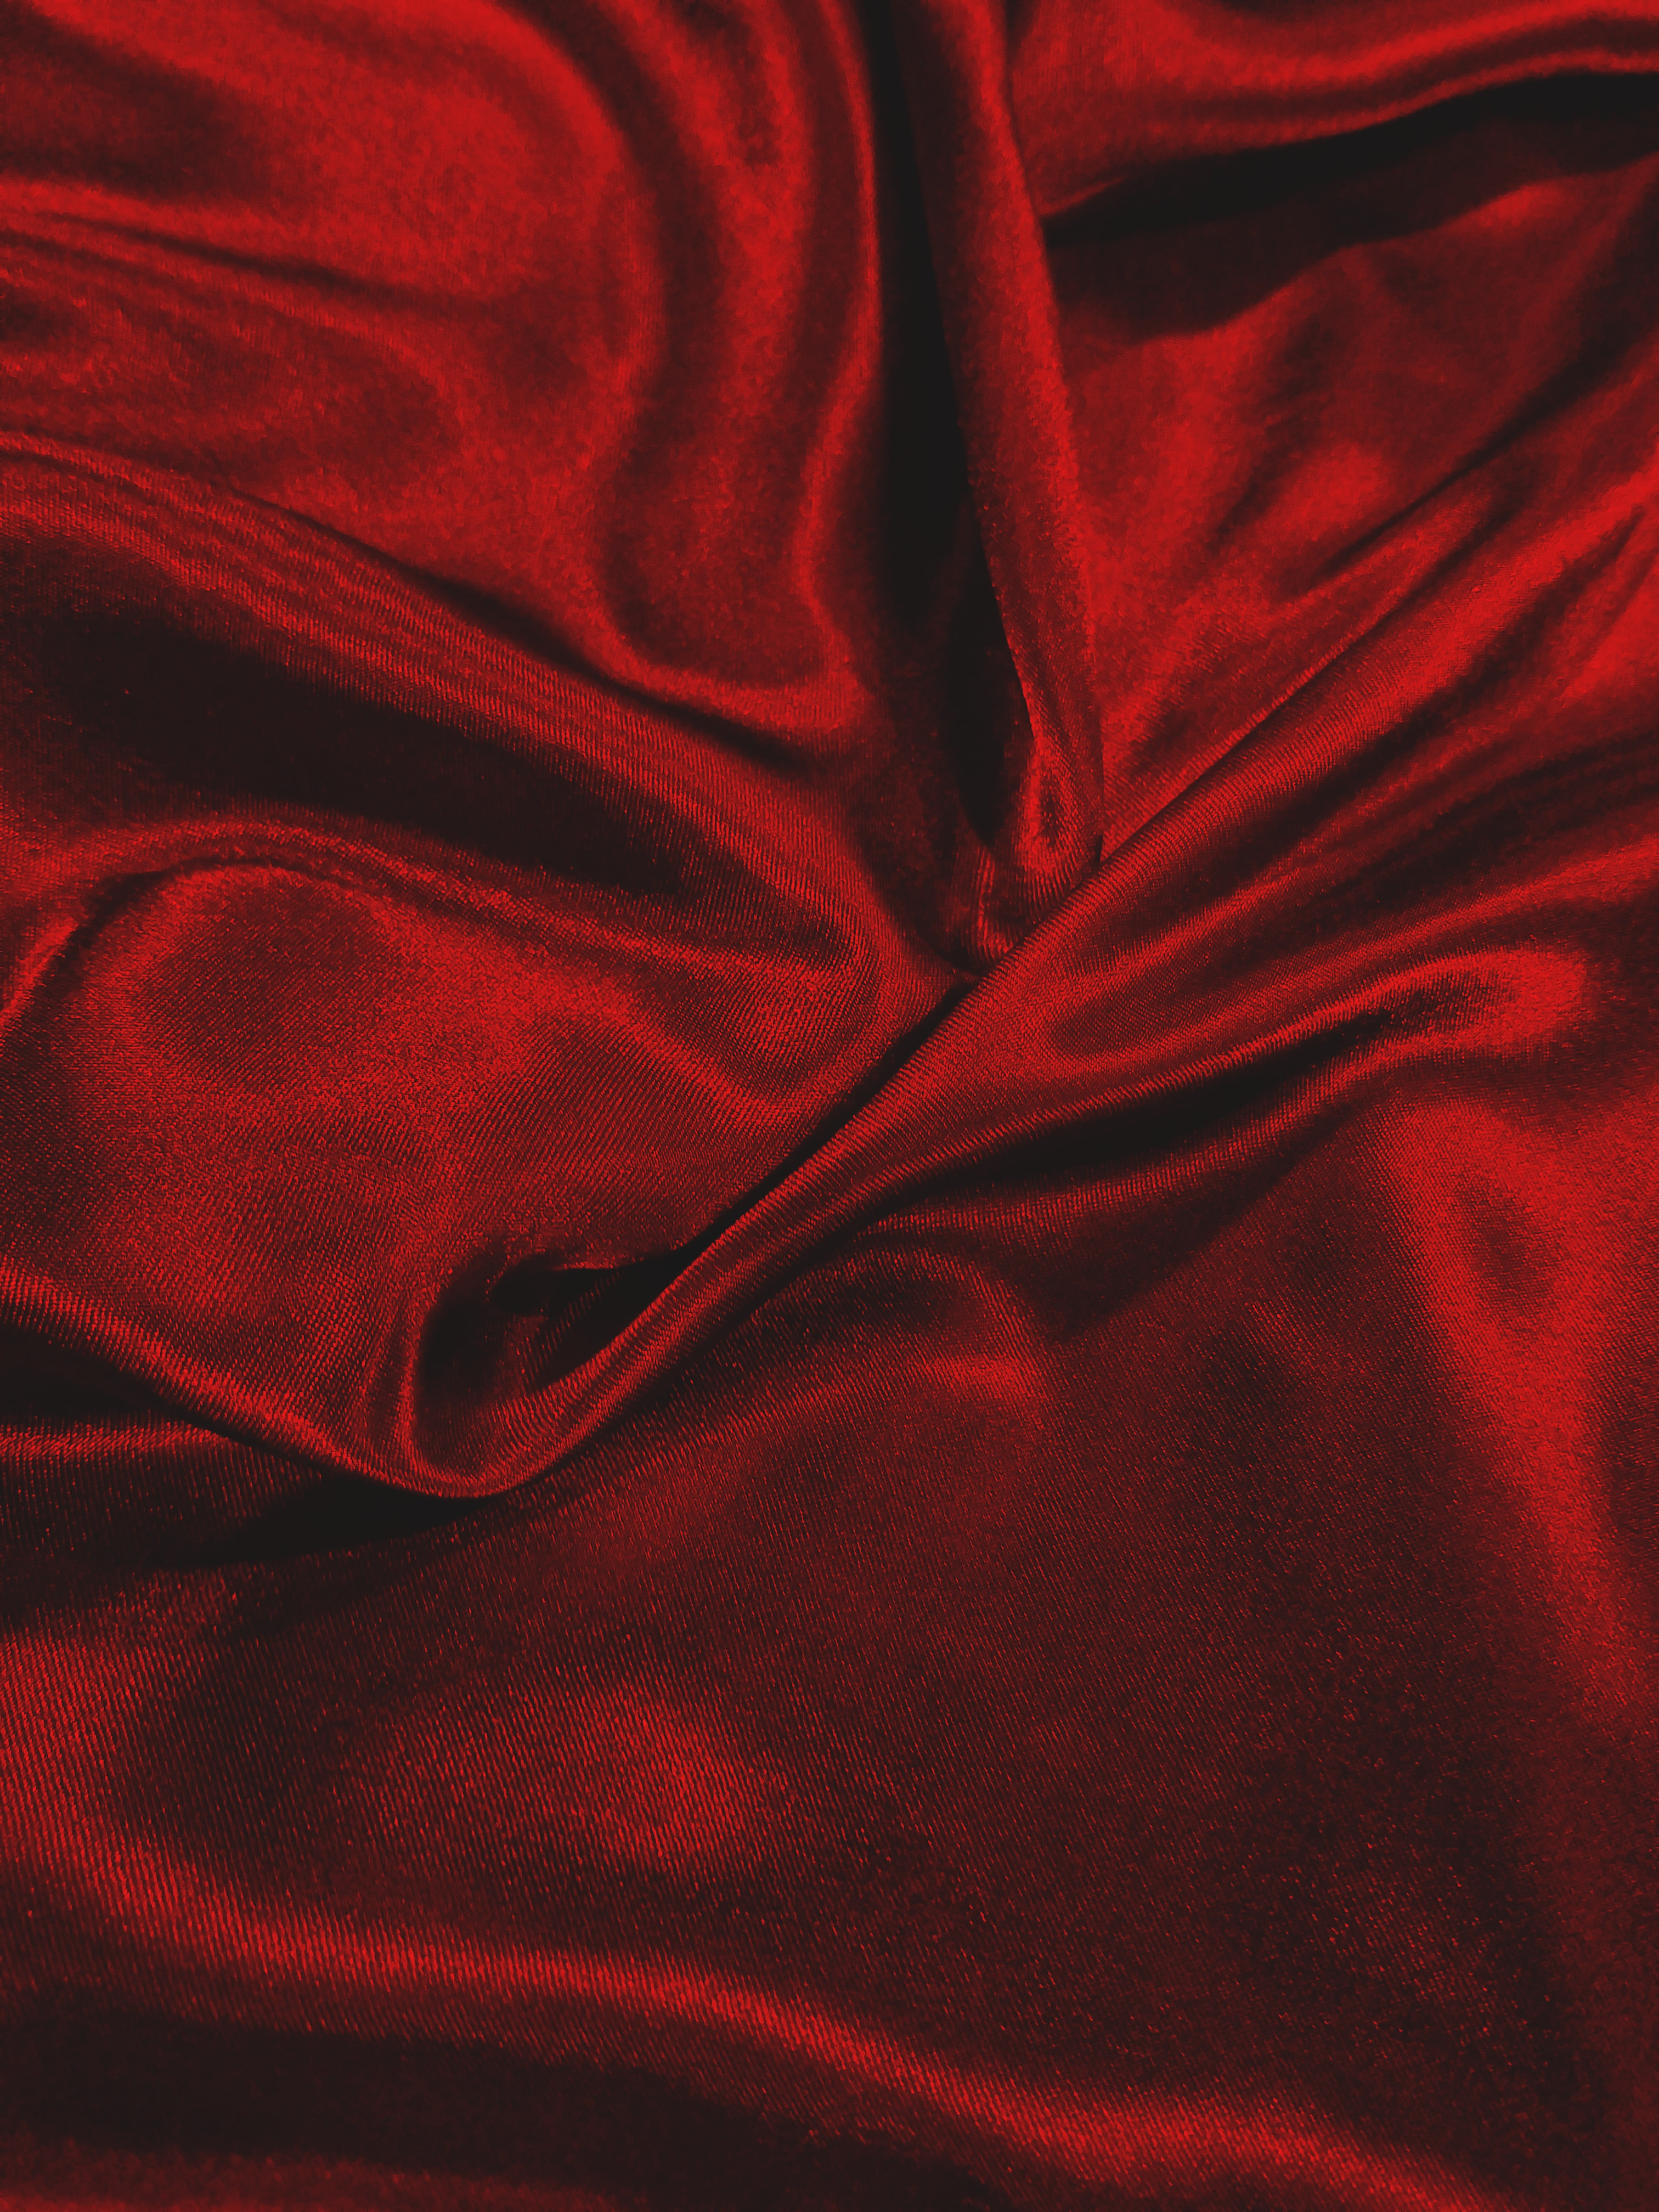 750 Fabric Pictures Hd Download Free Images On Unsplash